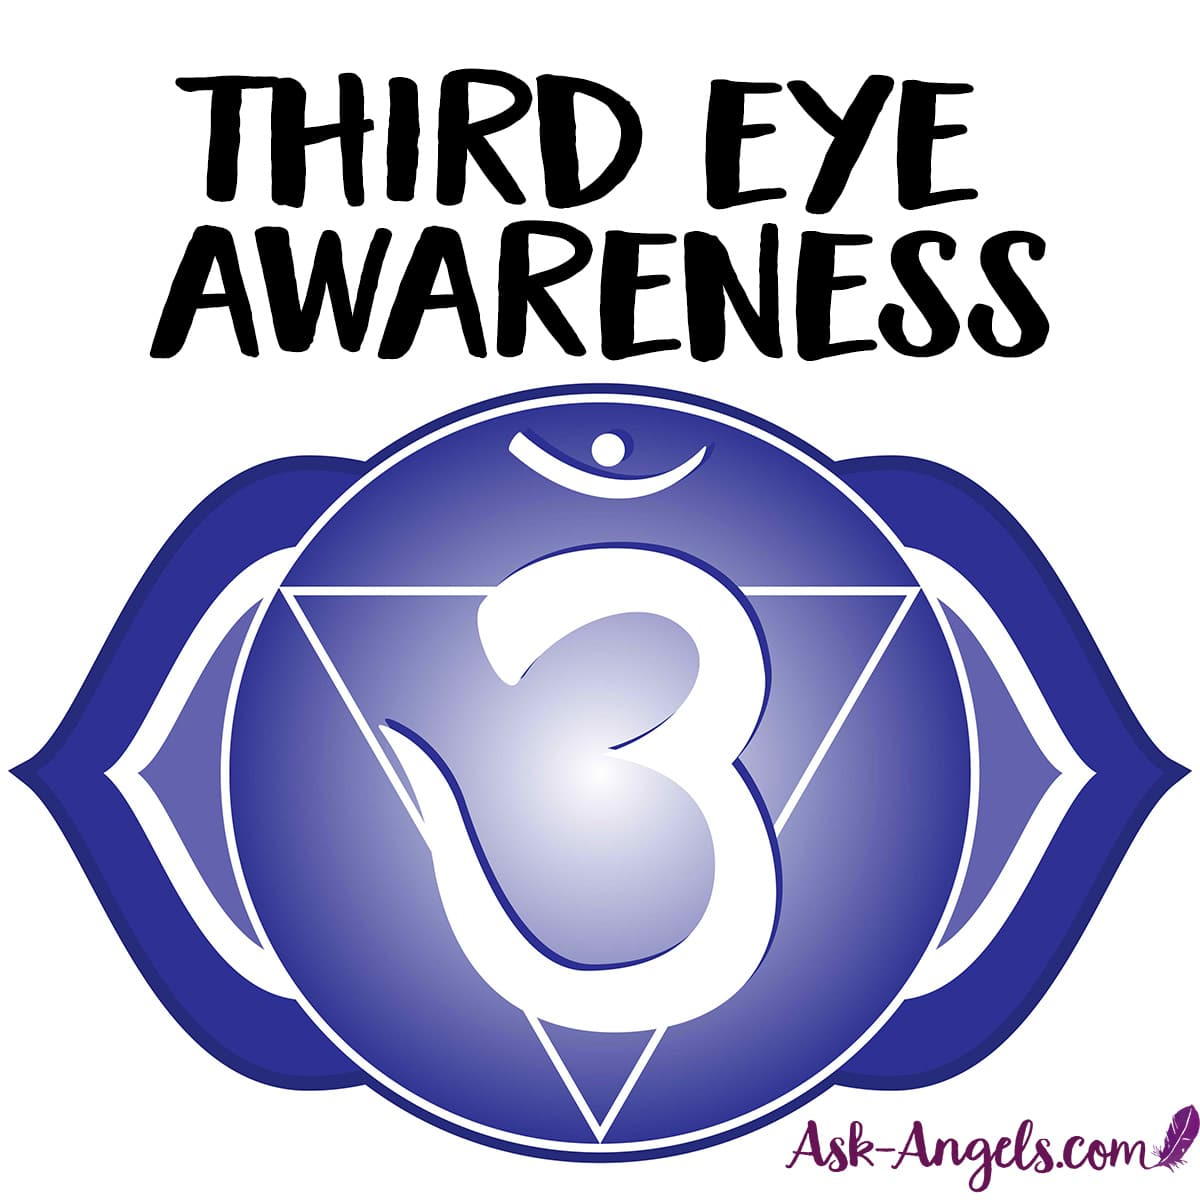 Third Eye Awareness